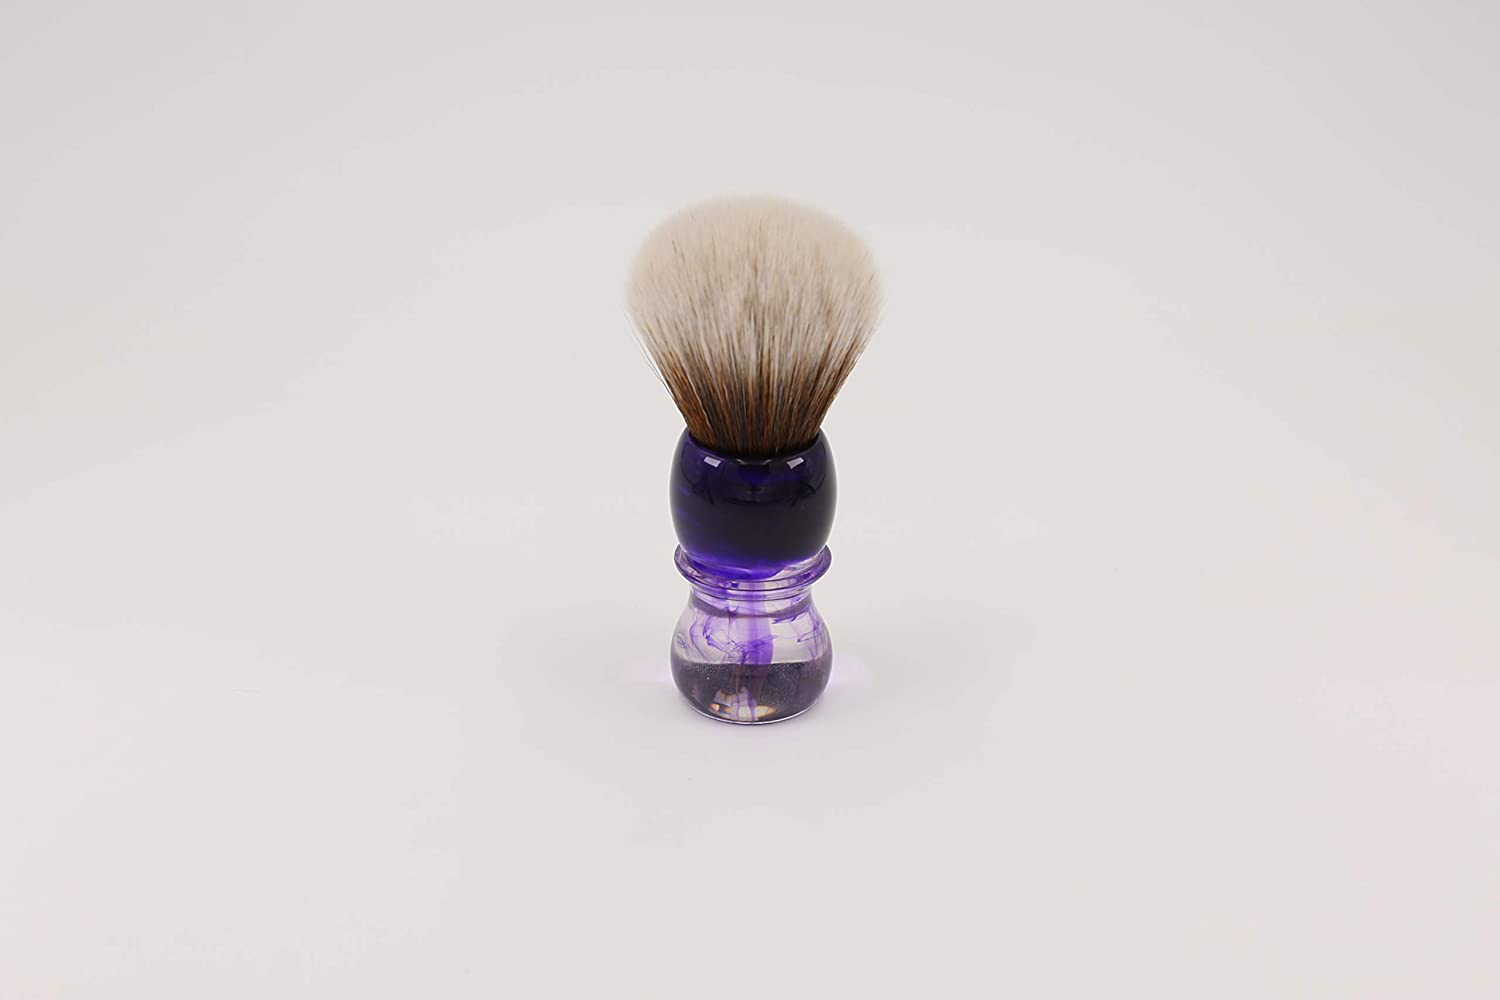 Purple Haze 24mm Shaving brush by Yaqi | Synthetic Mew Brown Hair Knot with Durable Resin Handle | Get a Barber Quality Lather Each Time | R1738-S Yaqi Brush